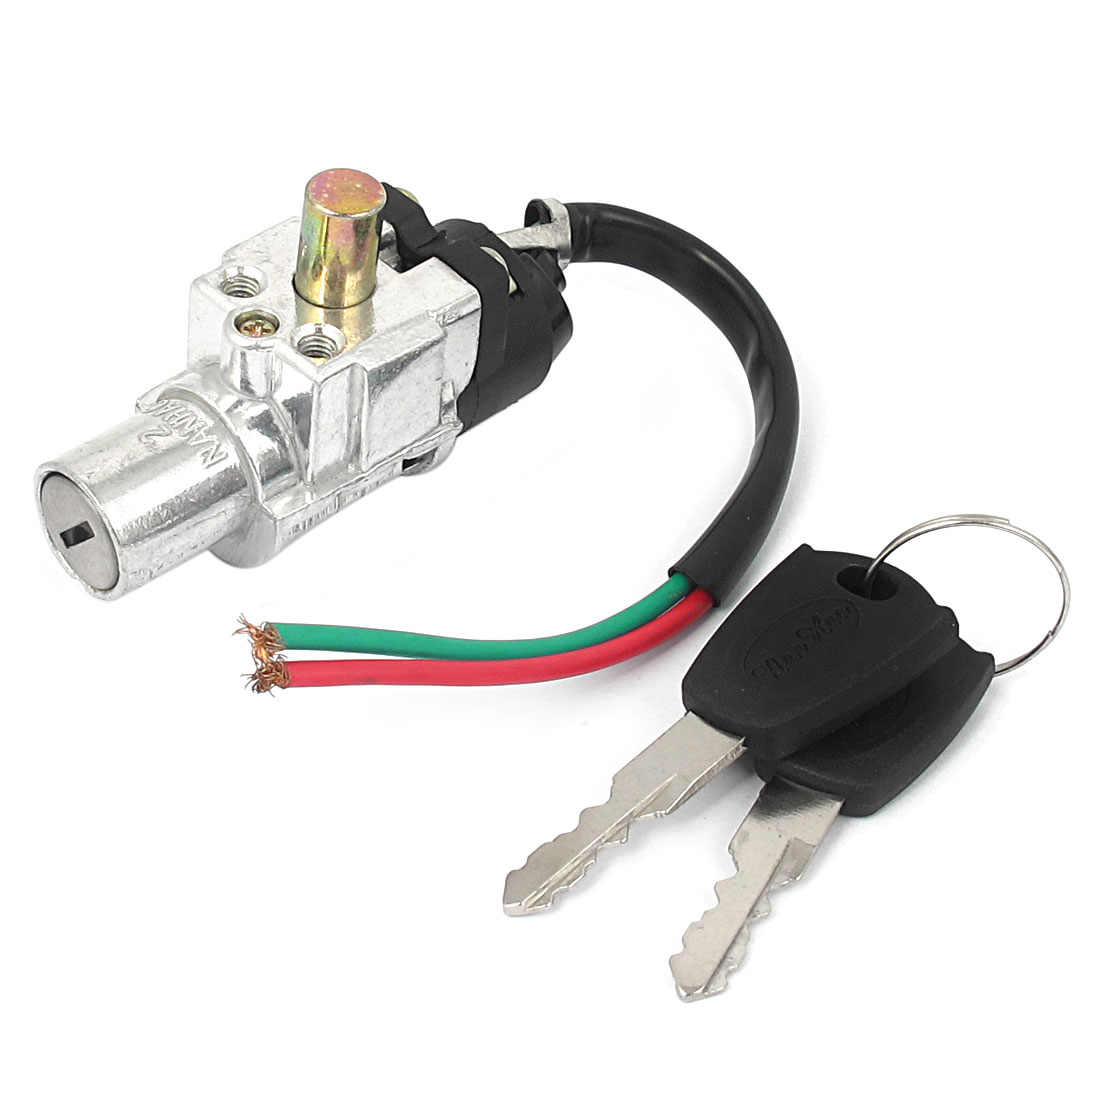 Motorcycle Security Electric Bike Scooter Ignition Switch Lock Lockset w Keys